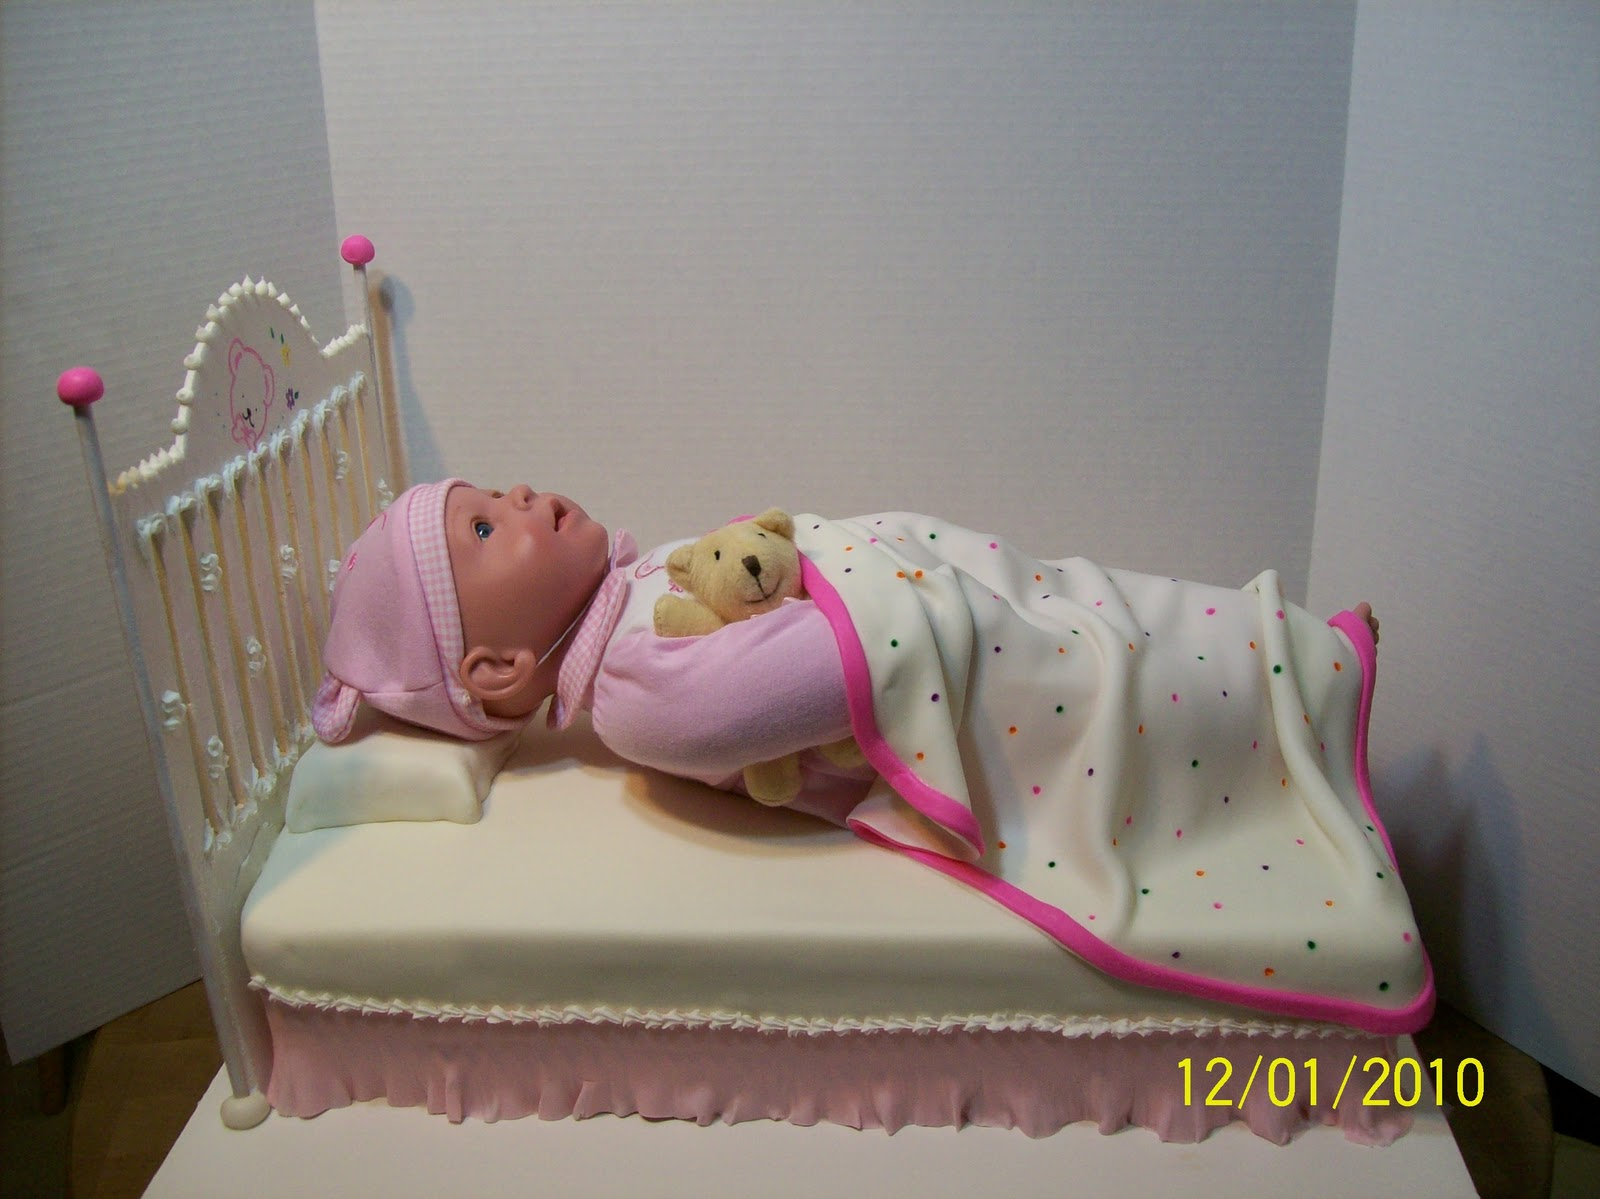 Doll Cake Images With Name : Cakes By Chris: Baby Doll Cake